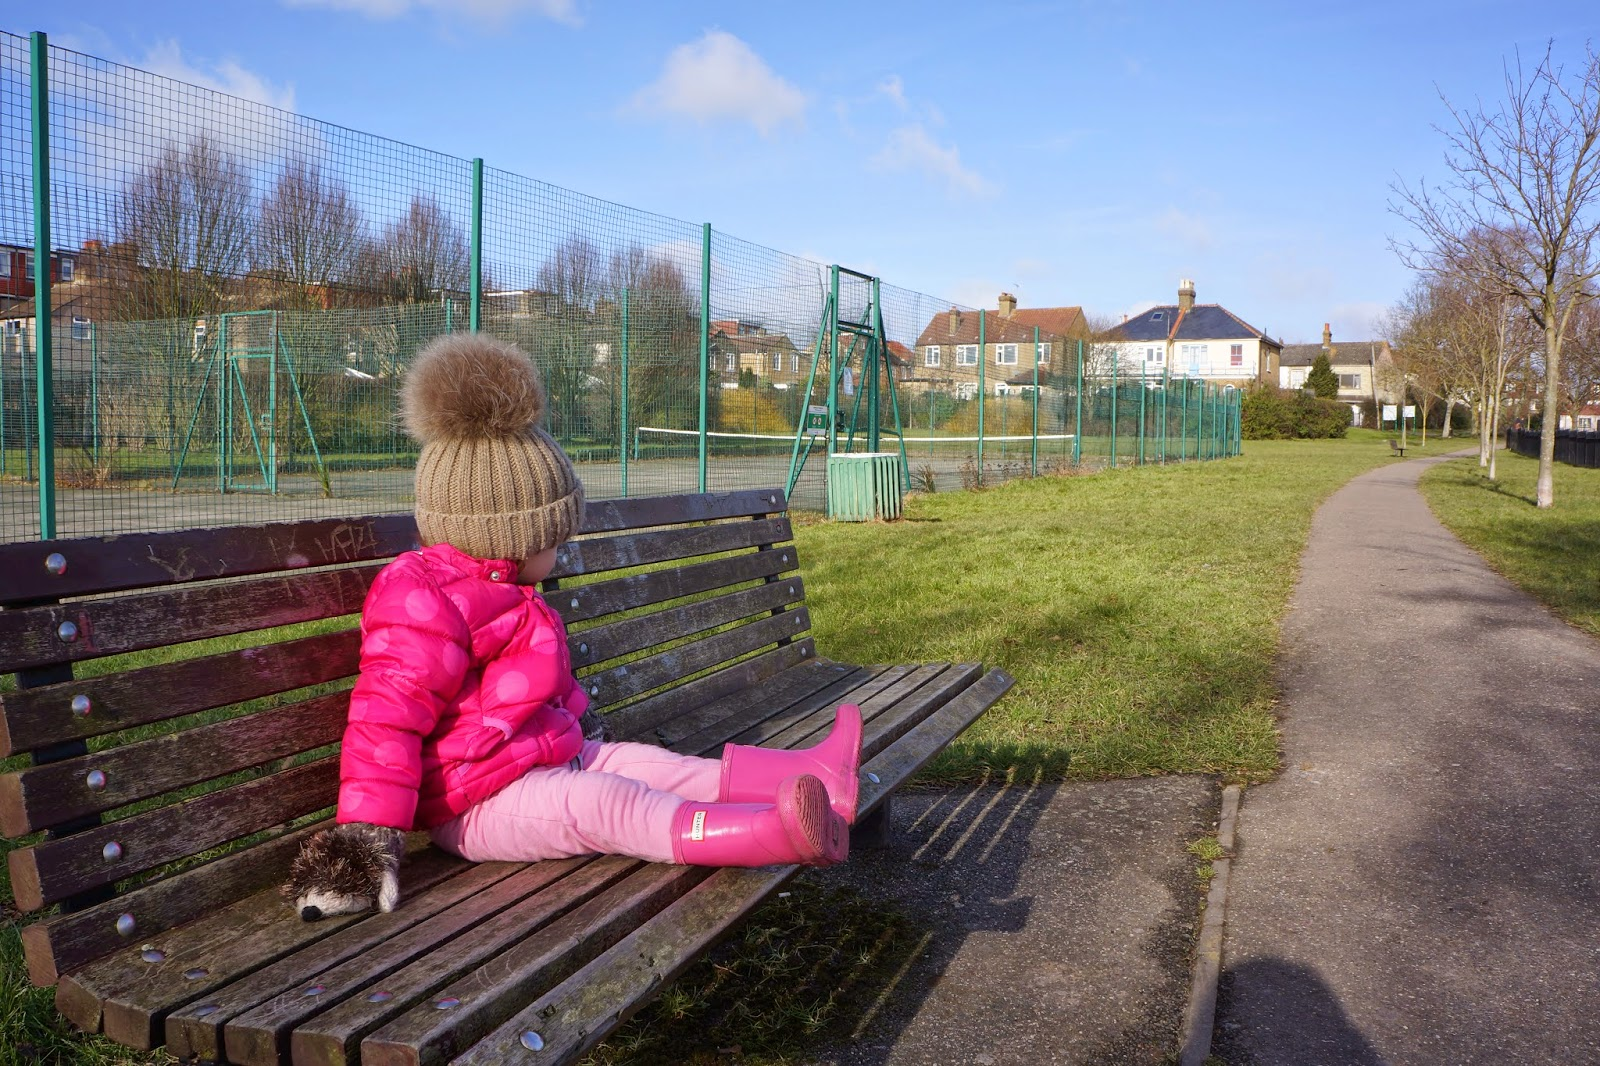 little girl sitting on a park bench